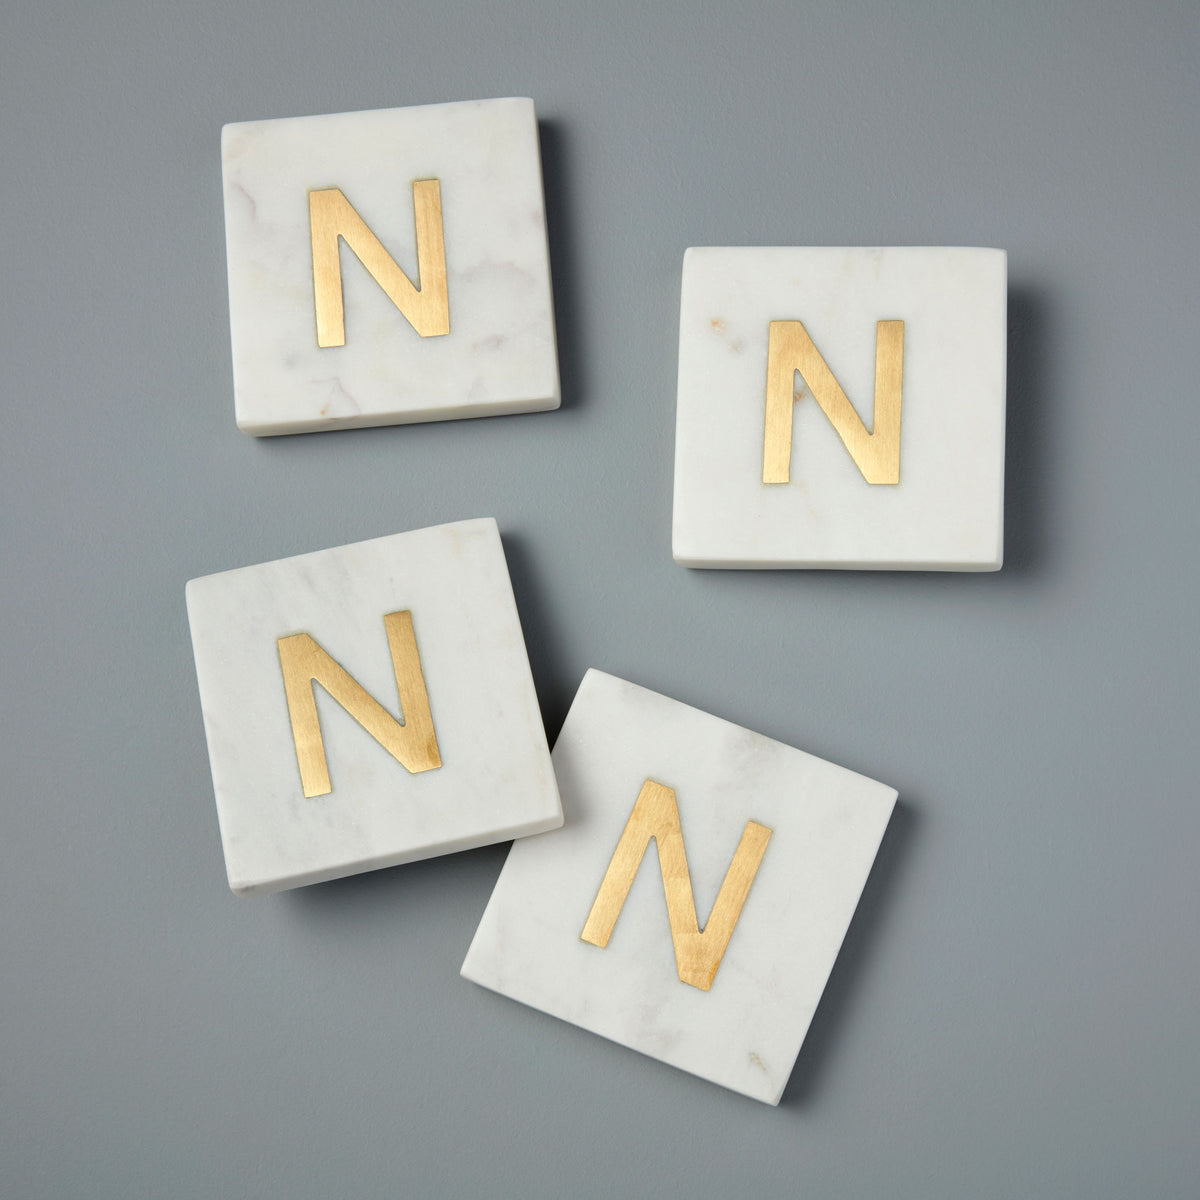 White Marble & Gold Monogram Coasters, Set of 4 - N